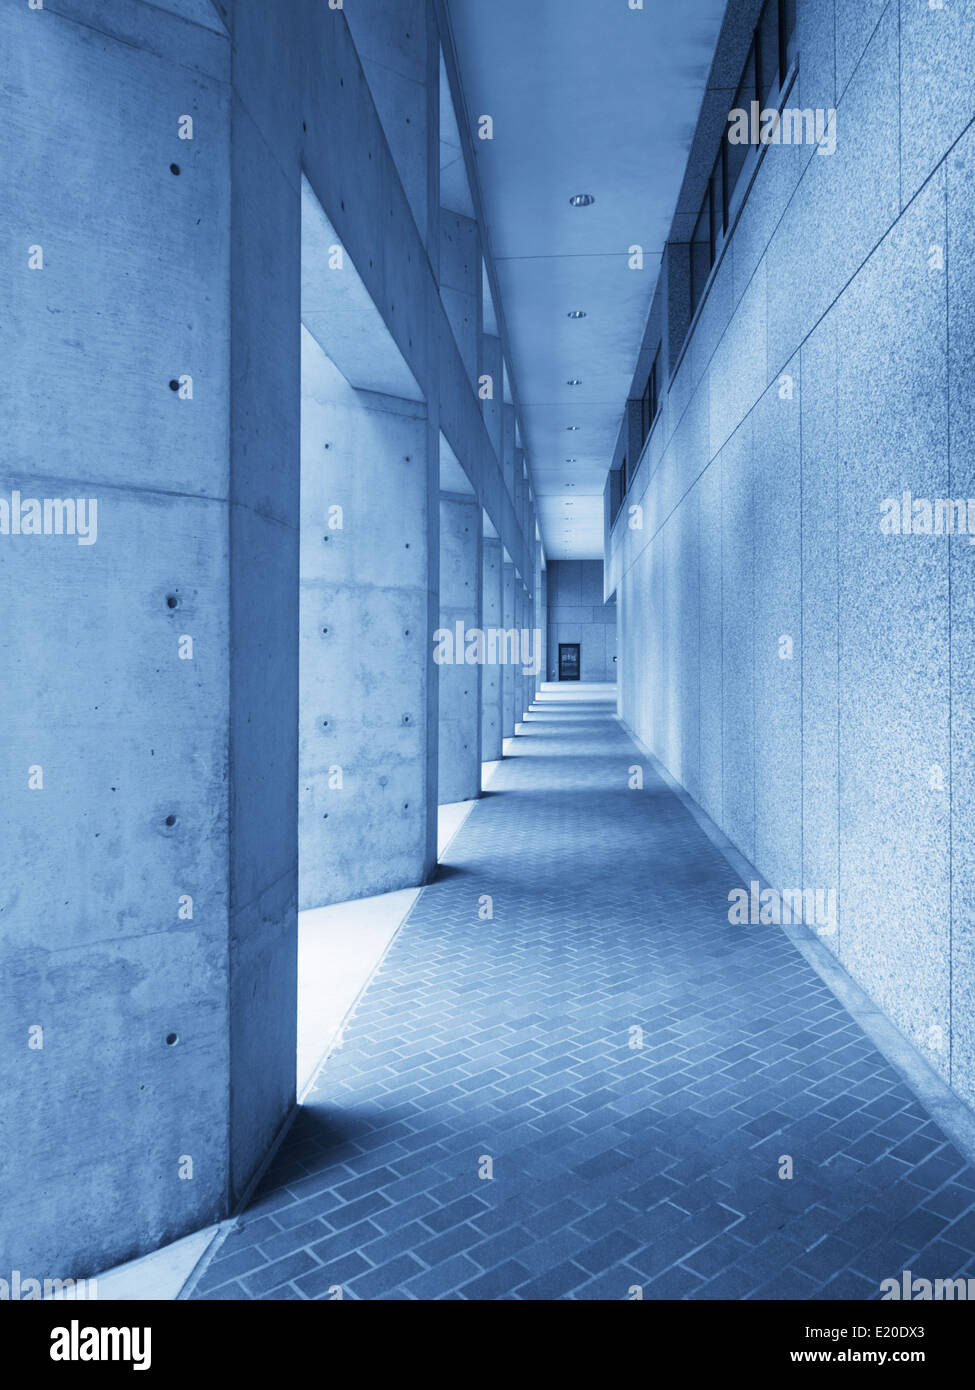 Concrete hallway in blue perspective - Stock Image